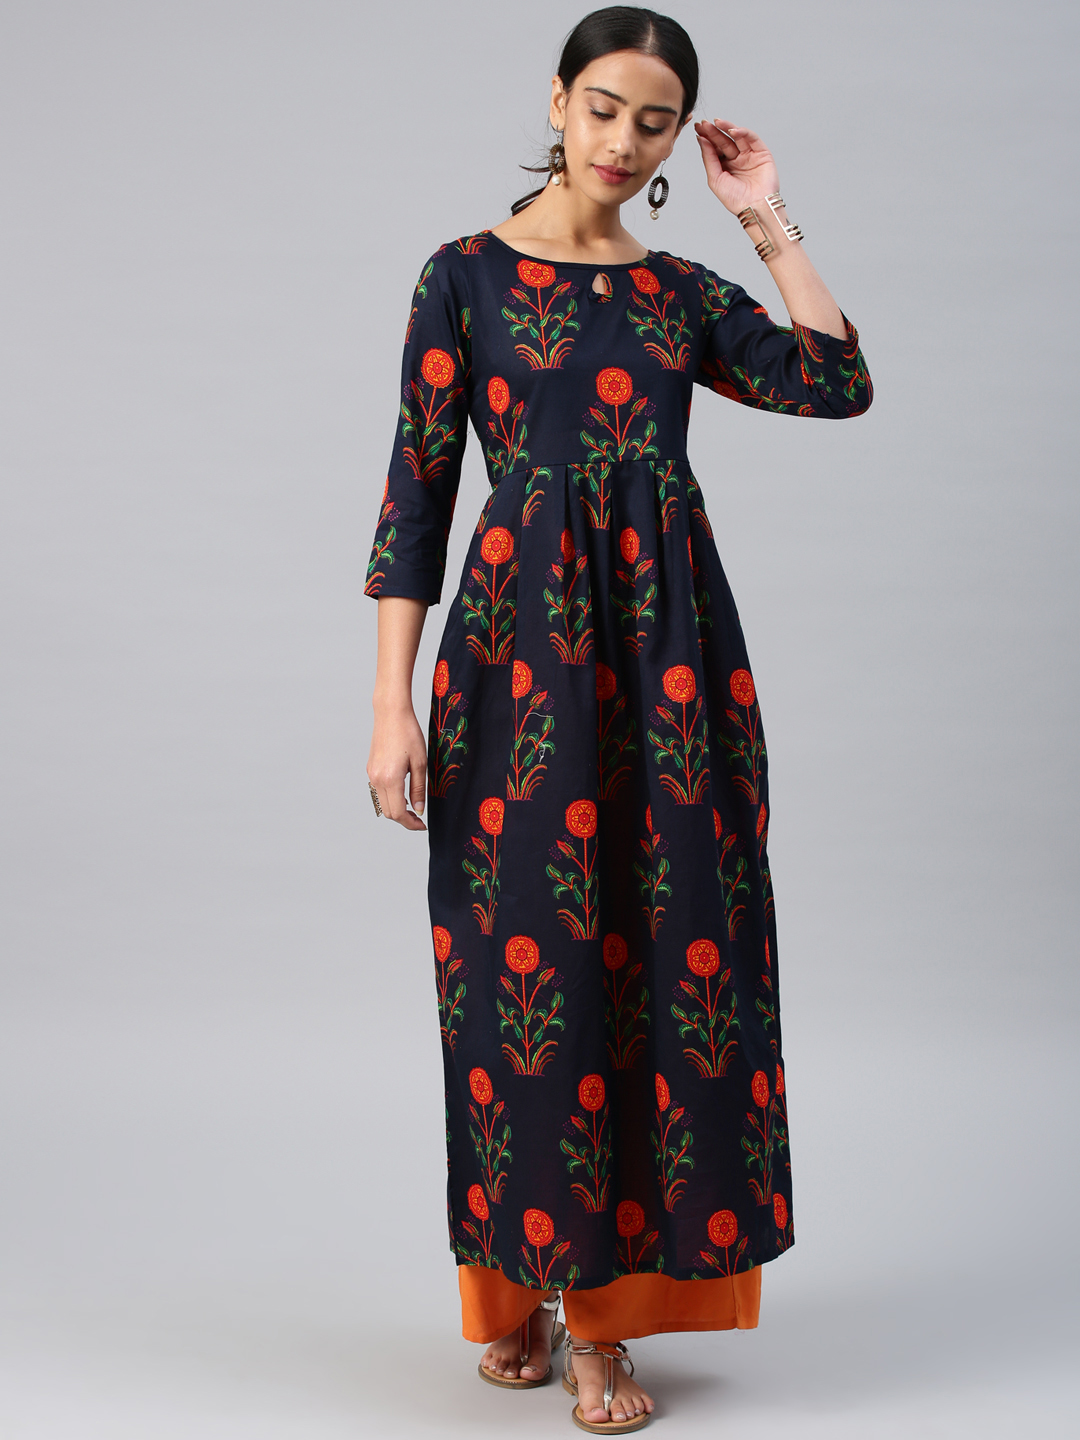 Vishudh Women Navy Blue Printed Fit and Flare Dress Price in India